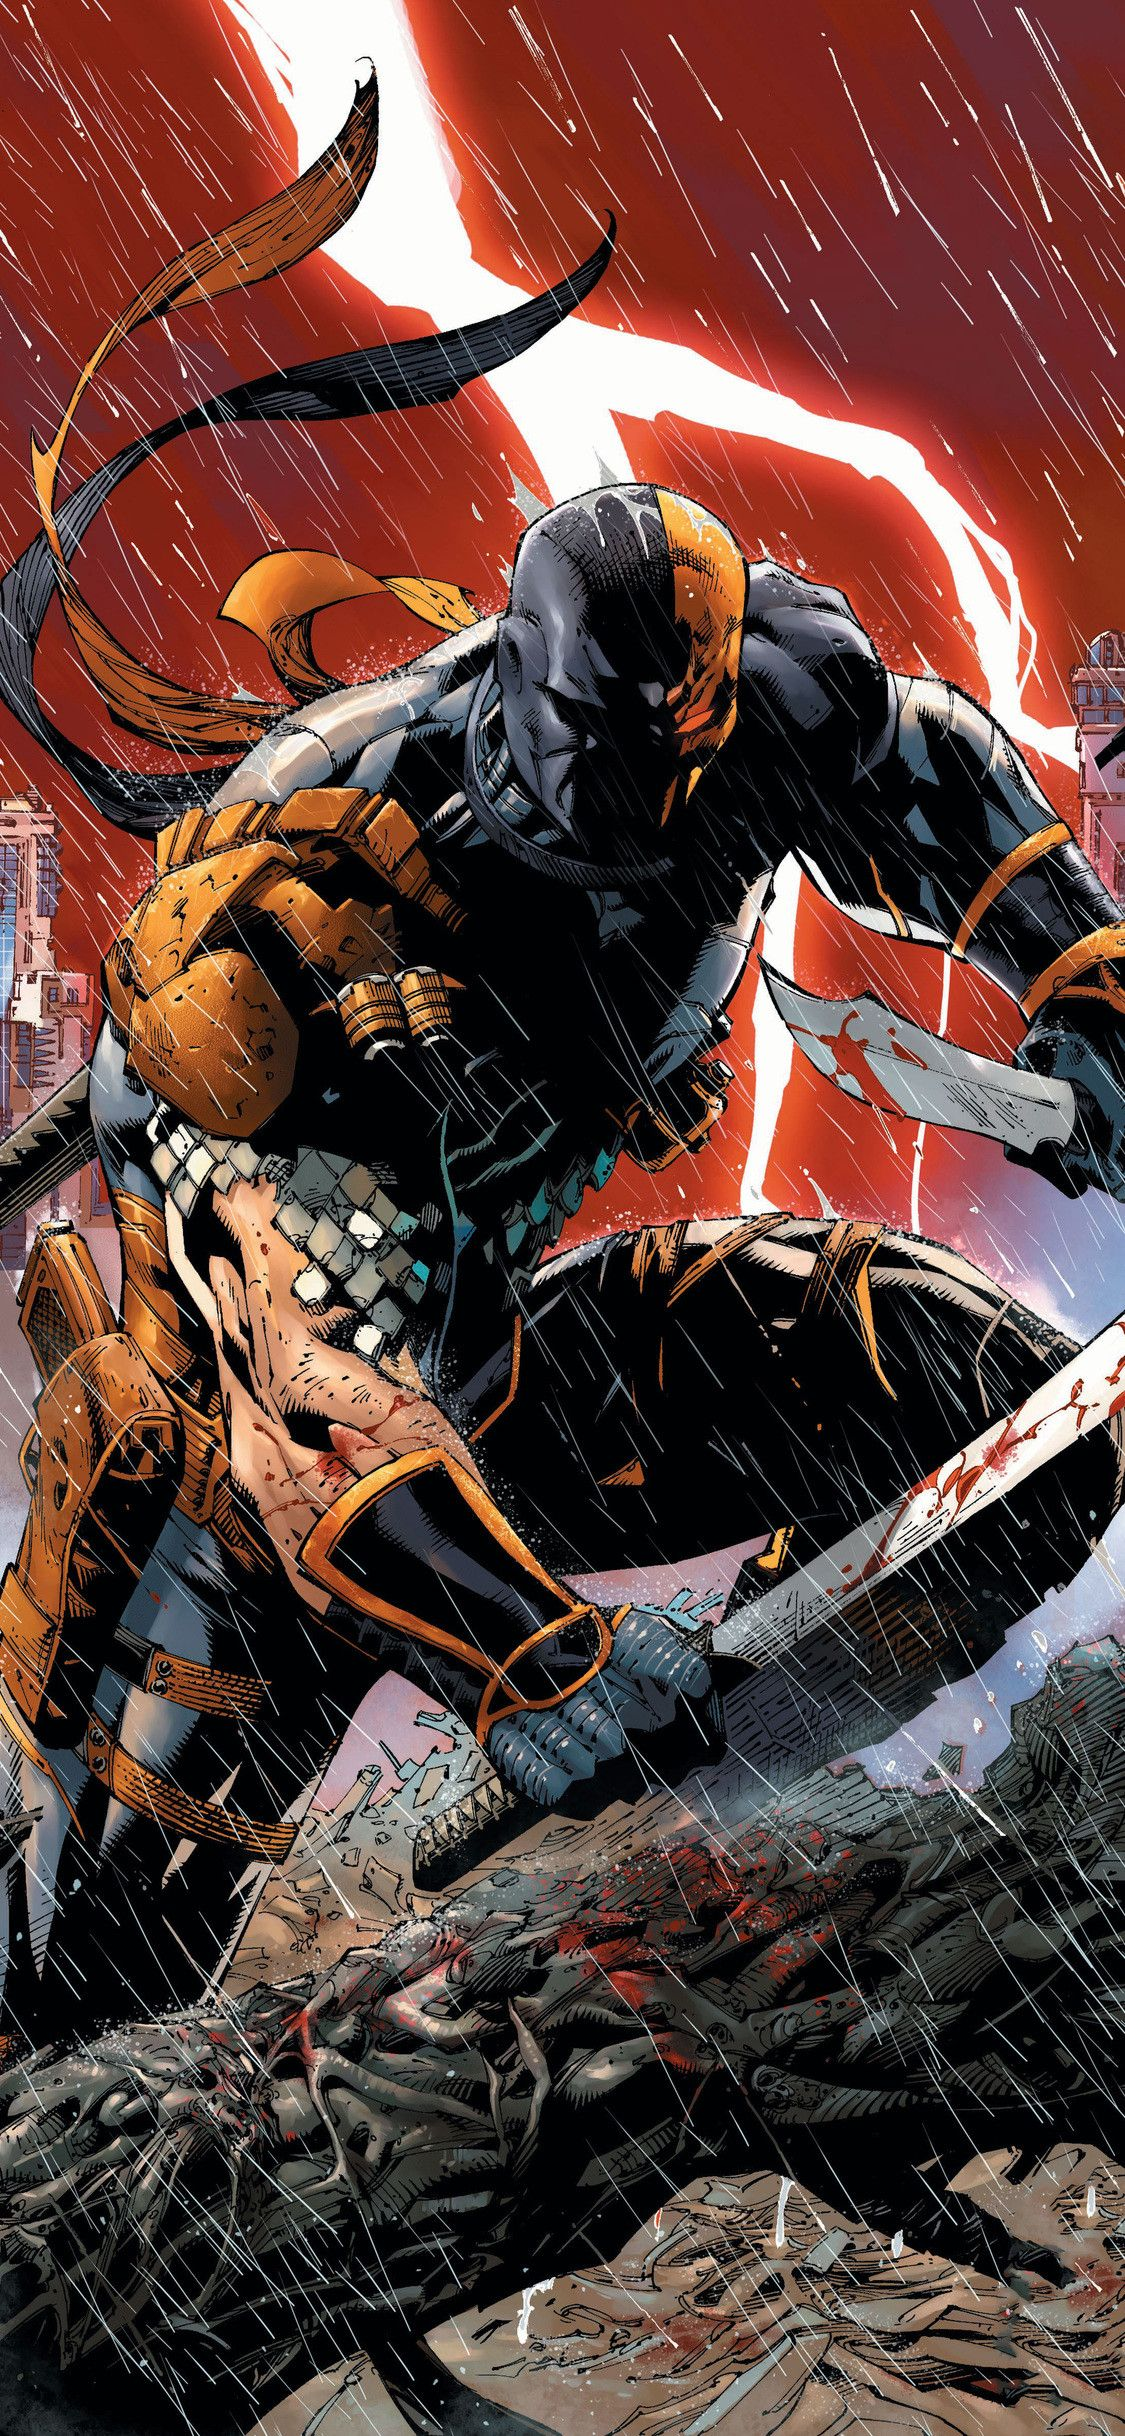 Deathstroke Iphone Wallpapers Top Free Deathstroke Iphone Backgrounds Wallpaperaccess